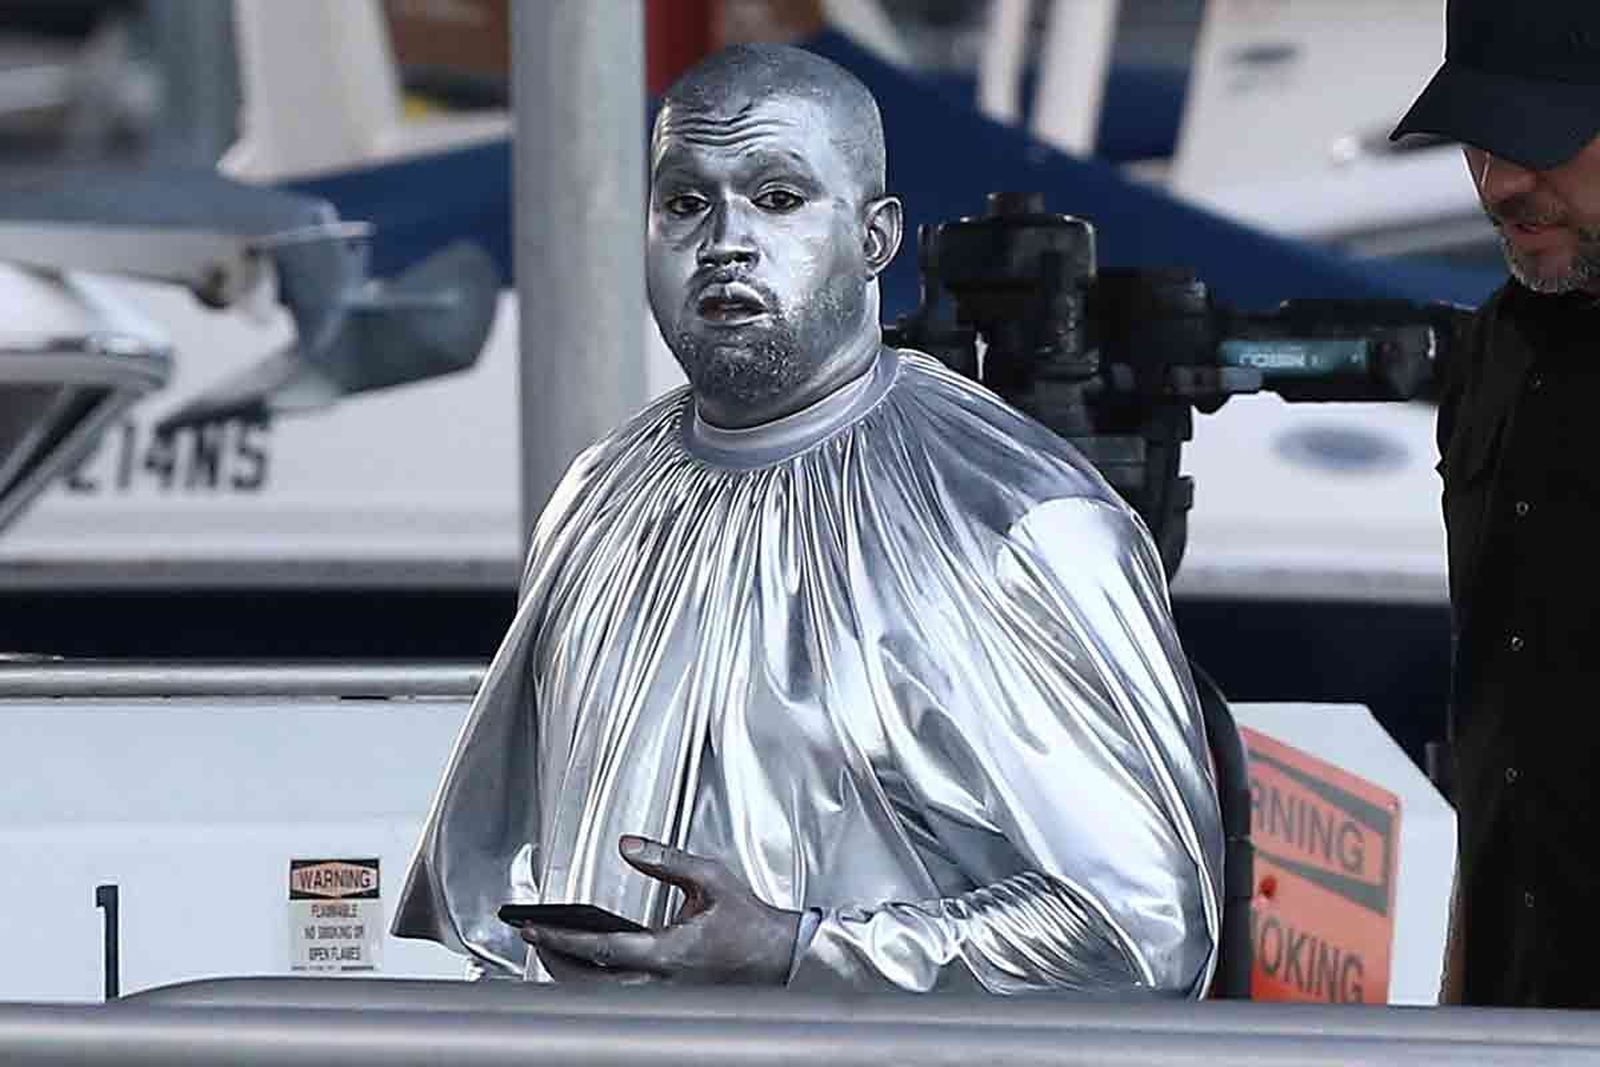 Silver Kanye West performs 'Mary' Opera Art Basel Miami